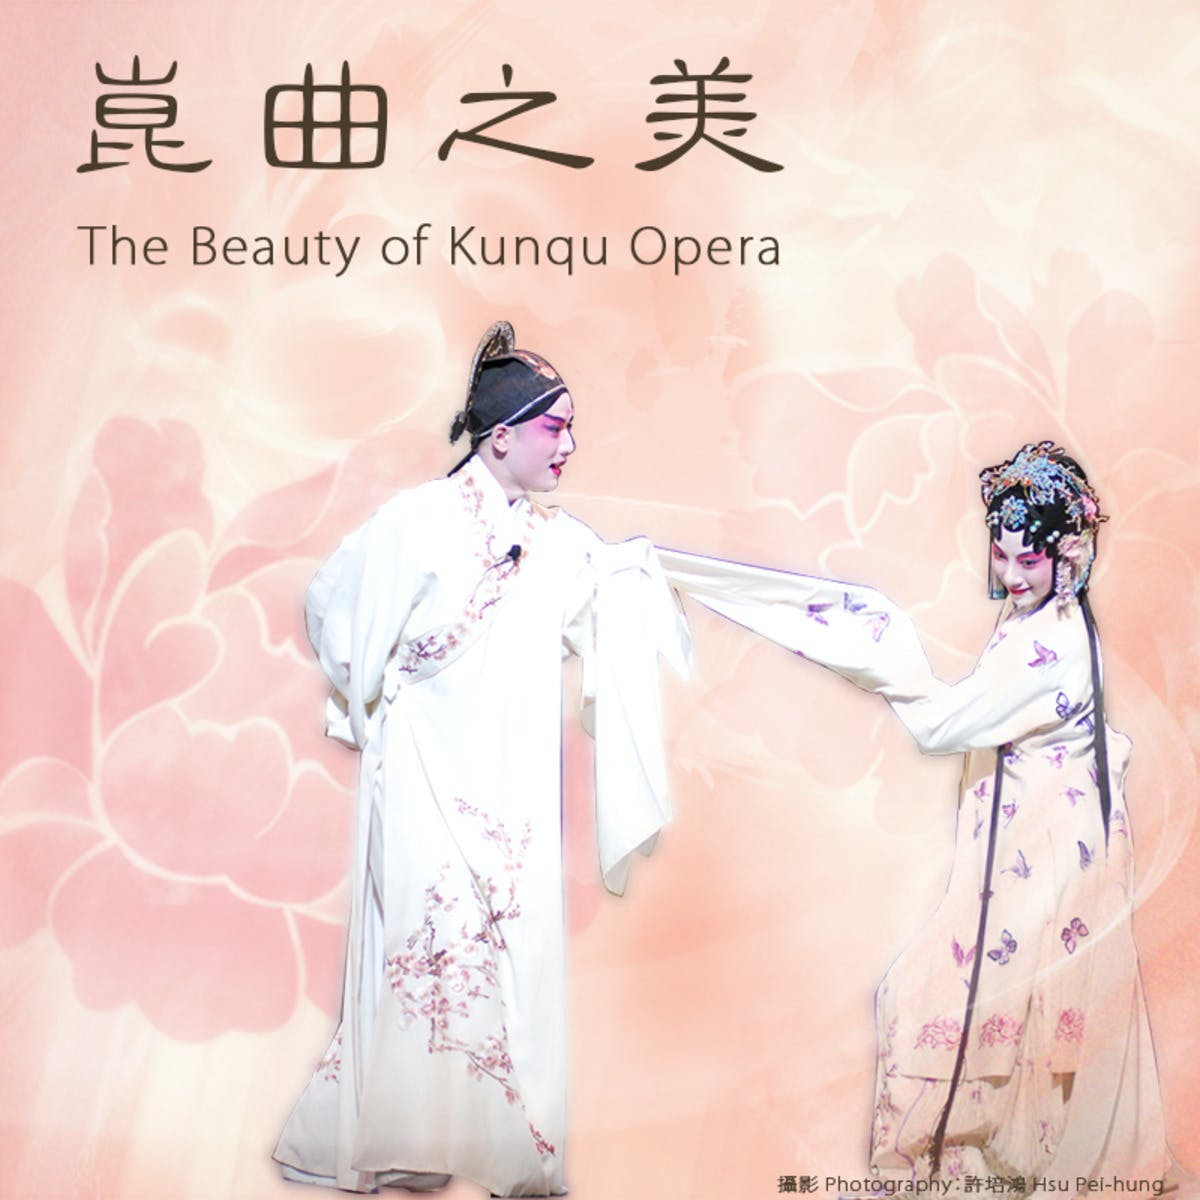 The Beauty of Kunqu Opera